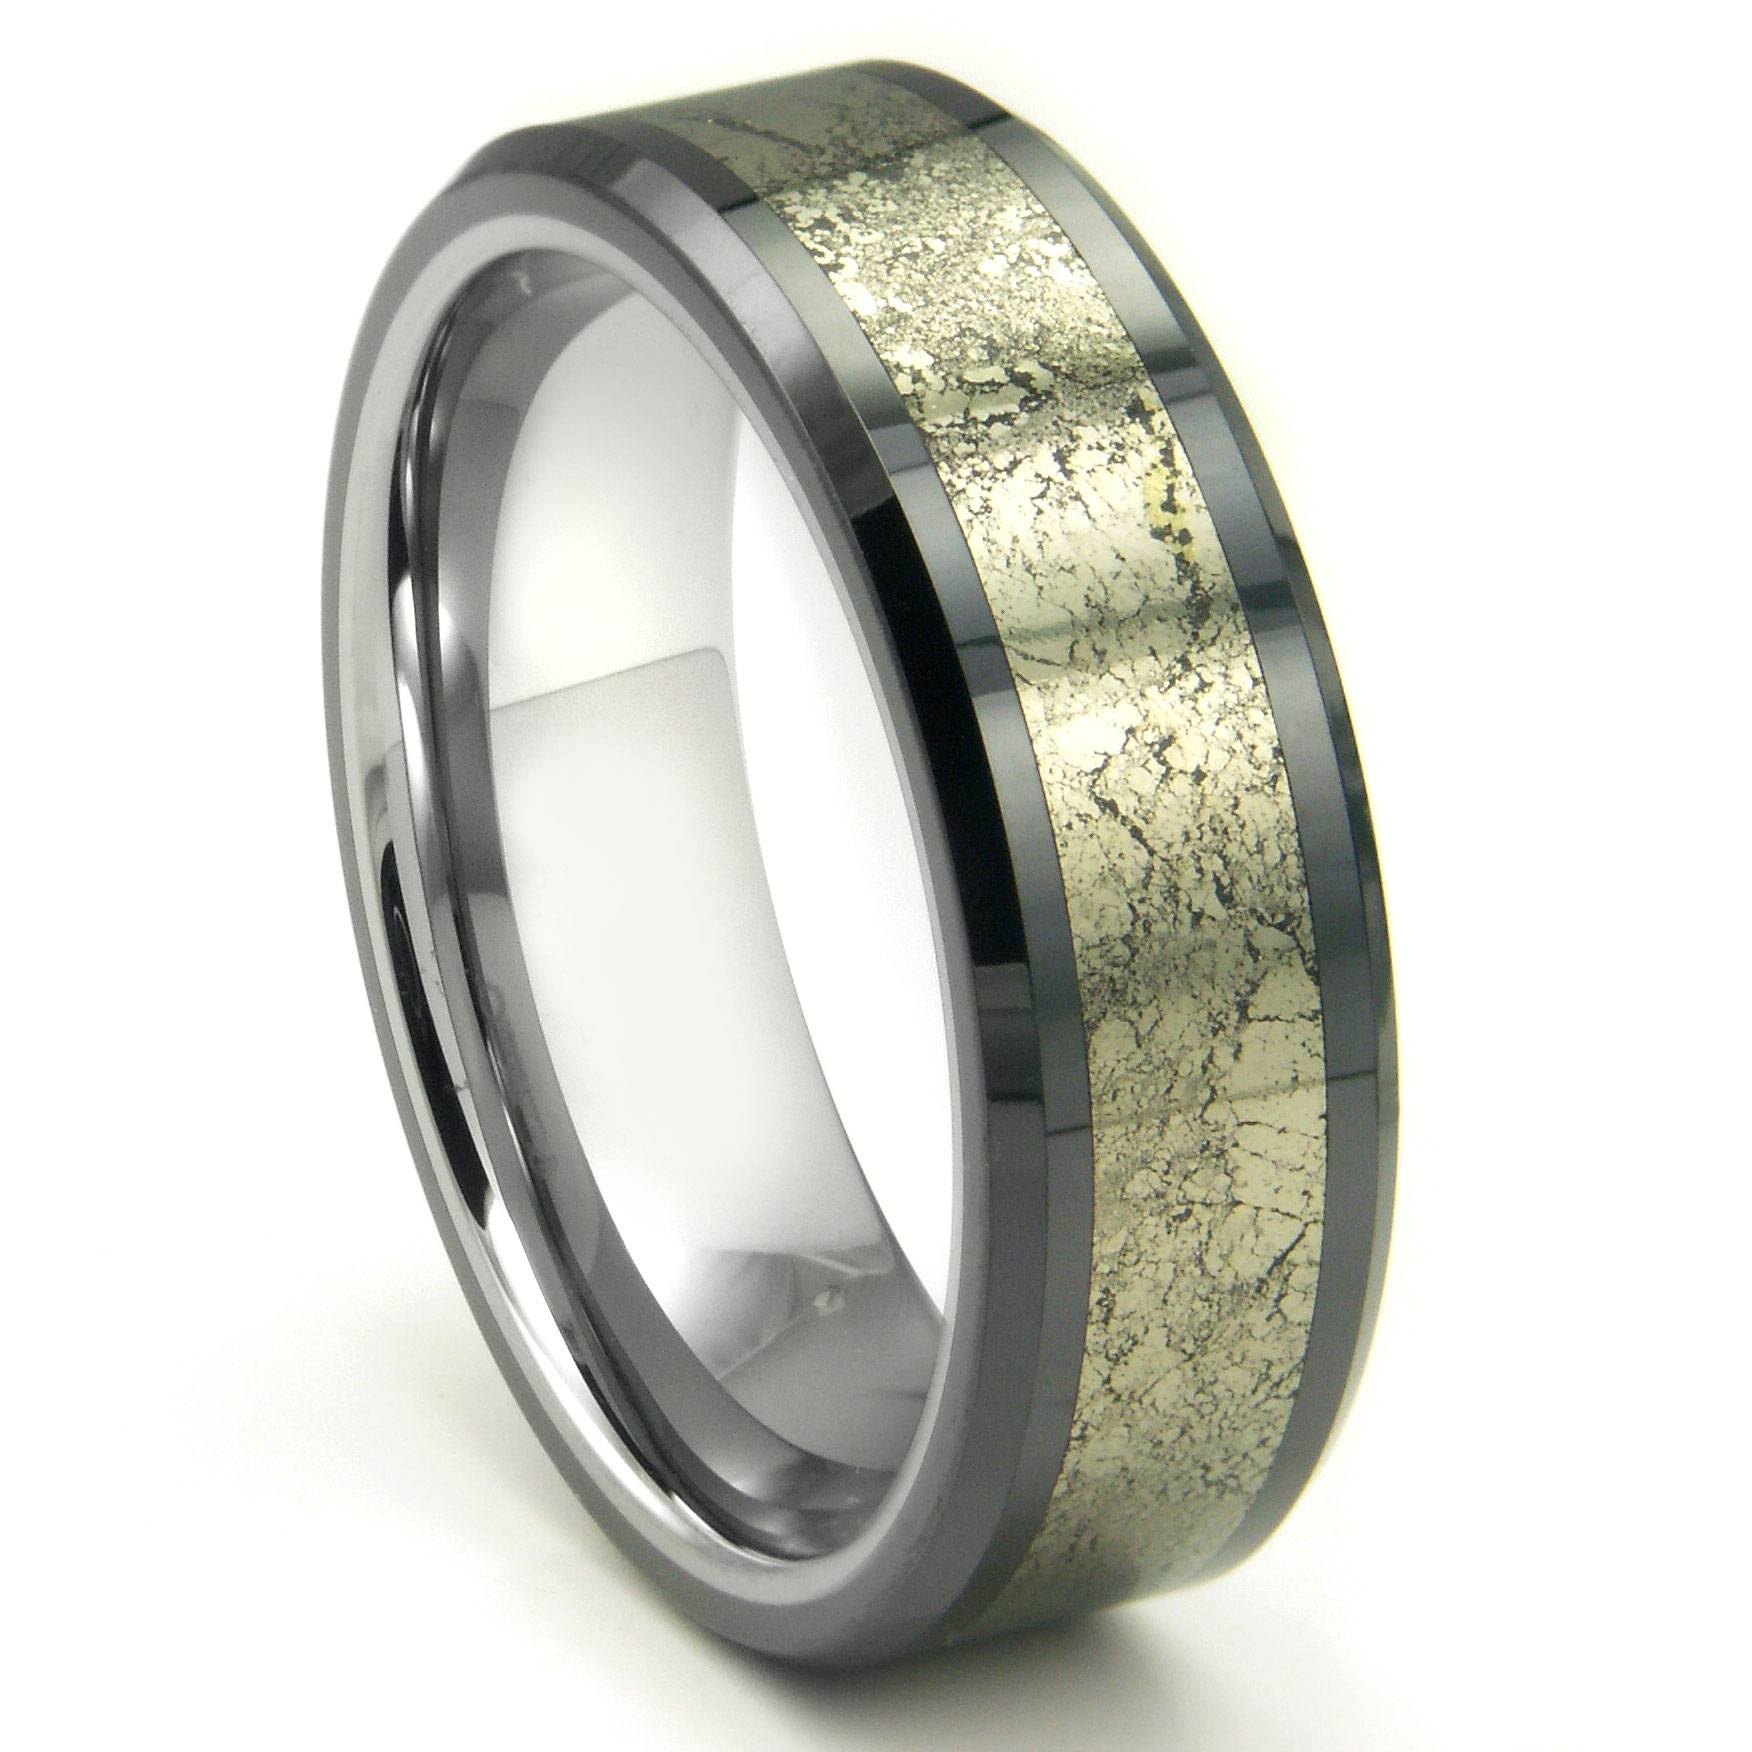 Mens Tungsten Rings & Wedding Bands – Titanium Kay Intended For Strongest Metal Wedding Bands (Gallery 6 of 15)